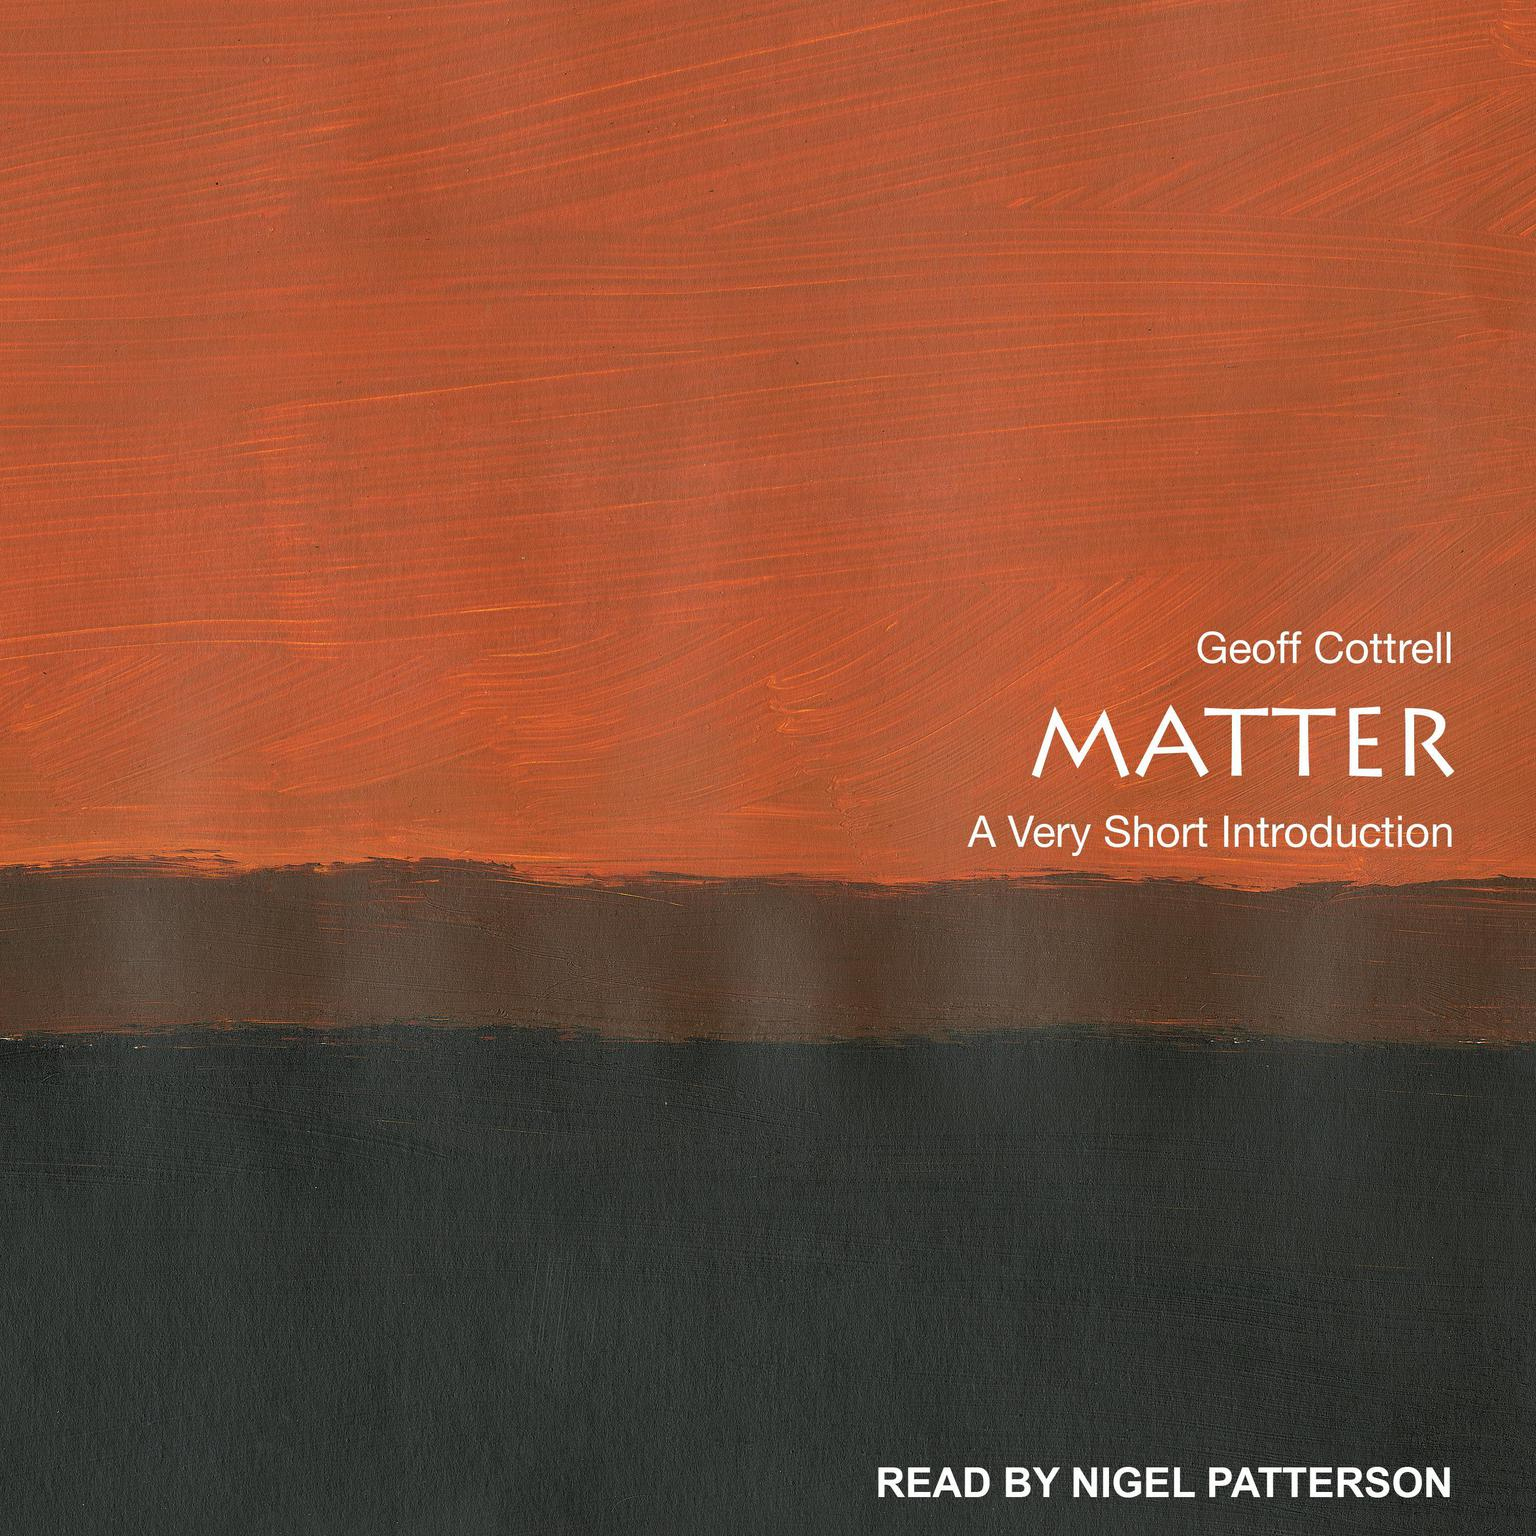 Matter: A Very Short Introduction Audiobook, by Geoff Cottrell